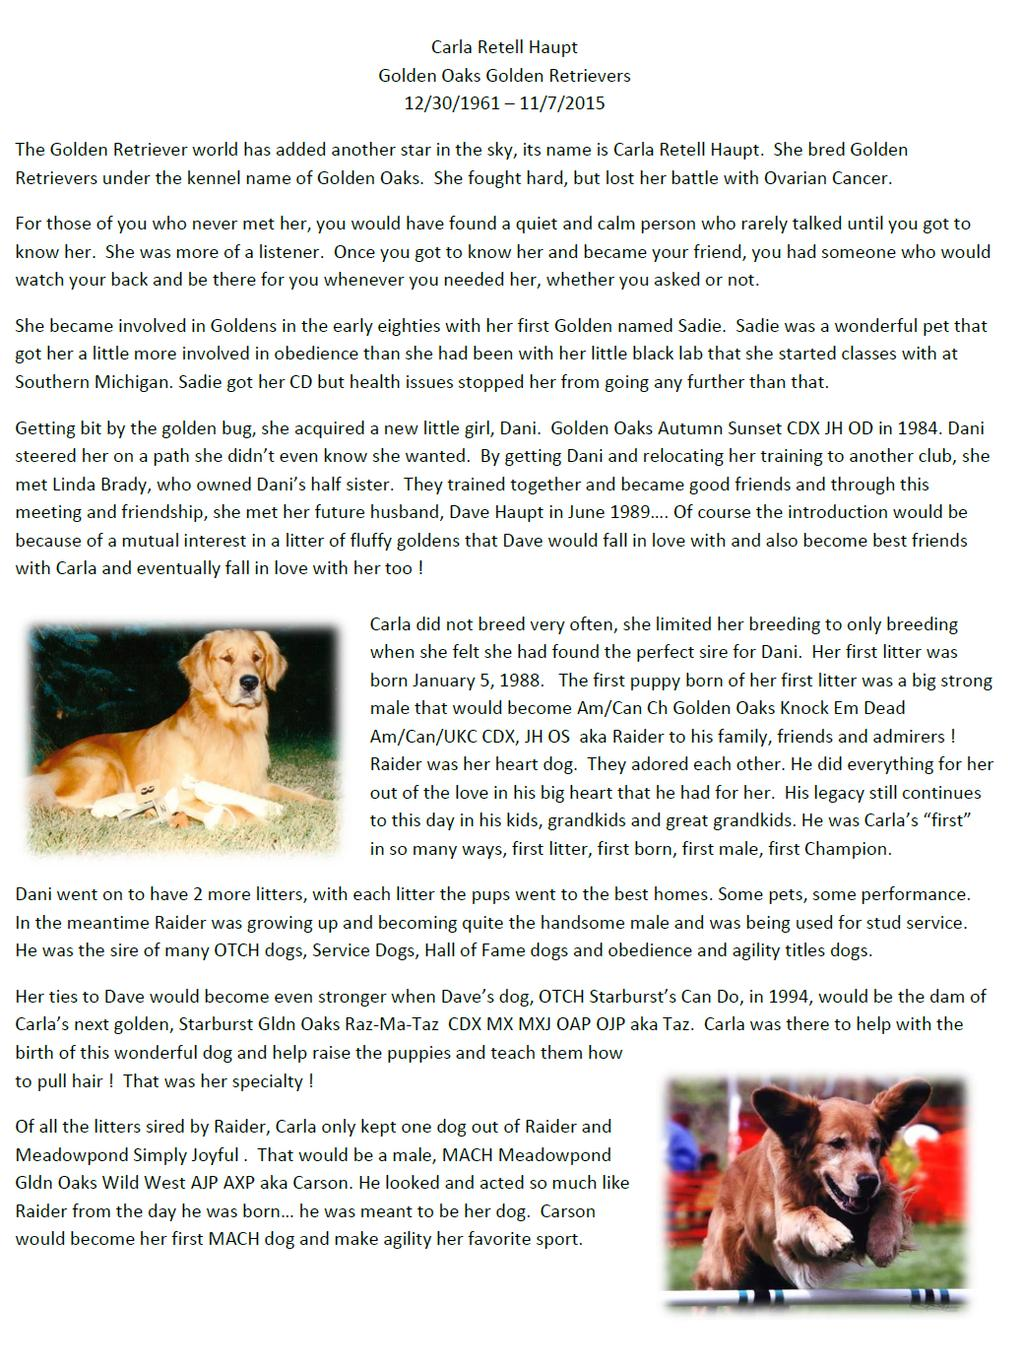 MICHIGOLDEN NEWSLETTER Page 7